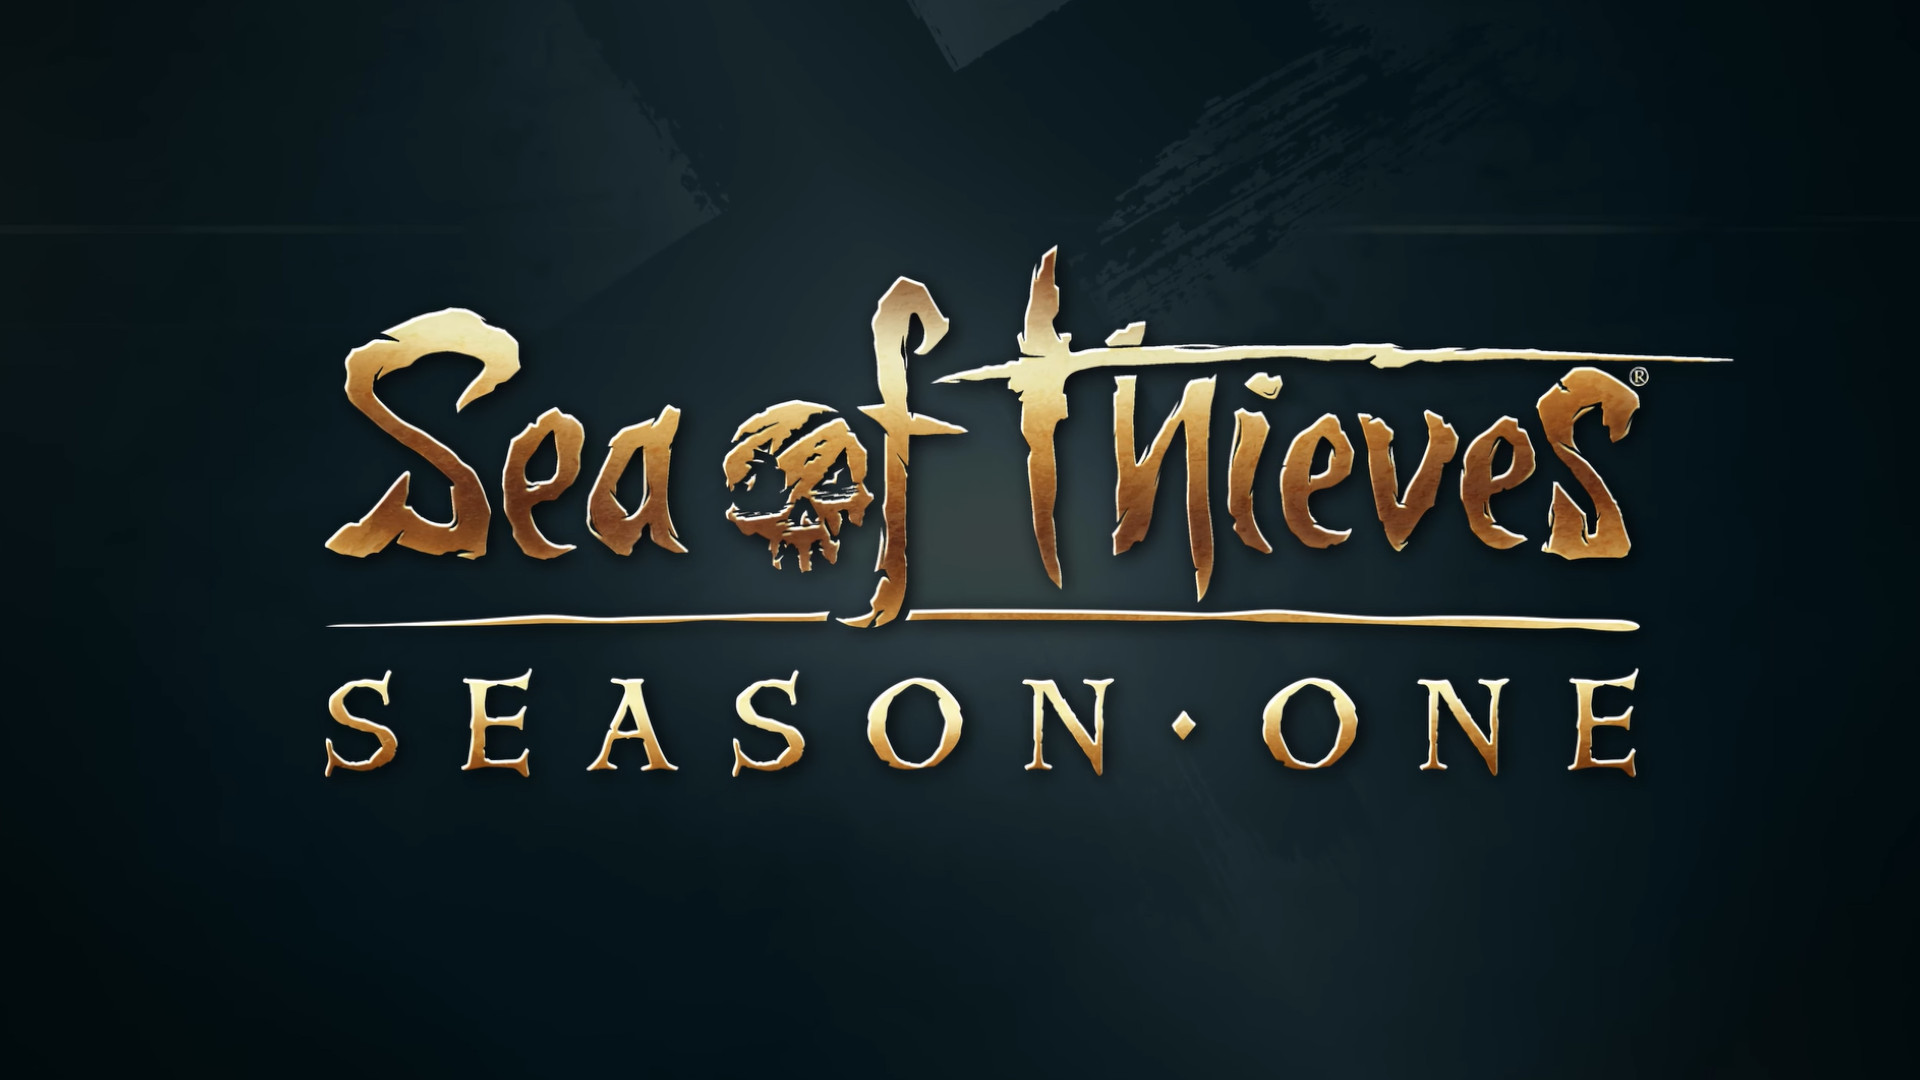 Sea of Thieves Season One release time – Rare details downtime